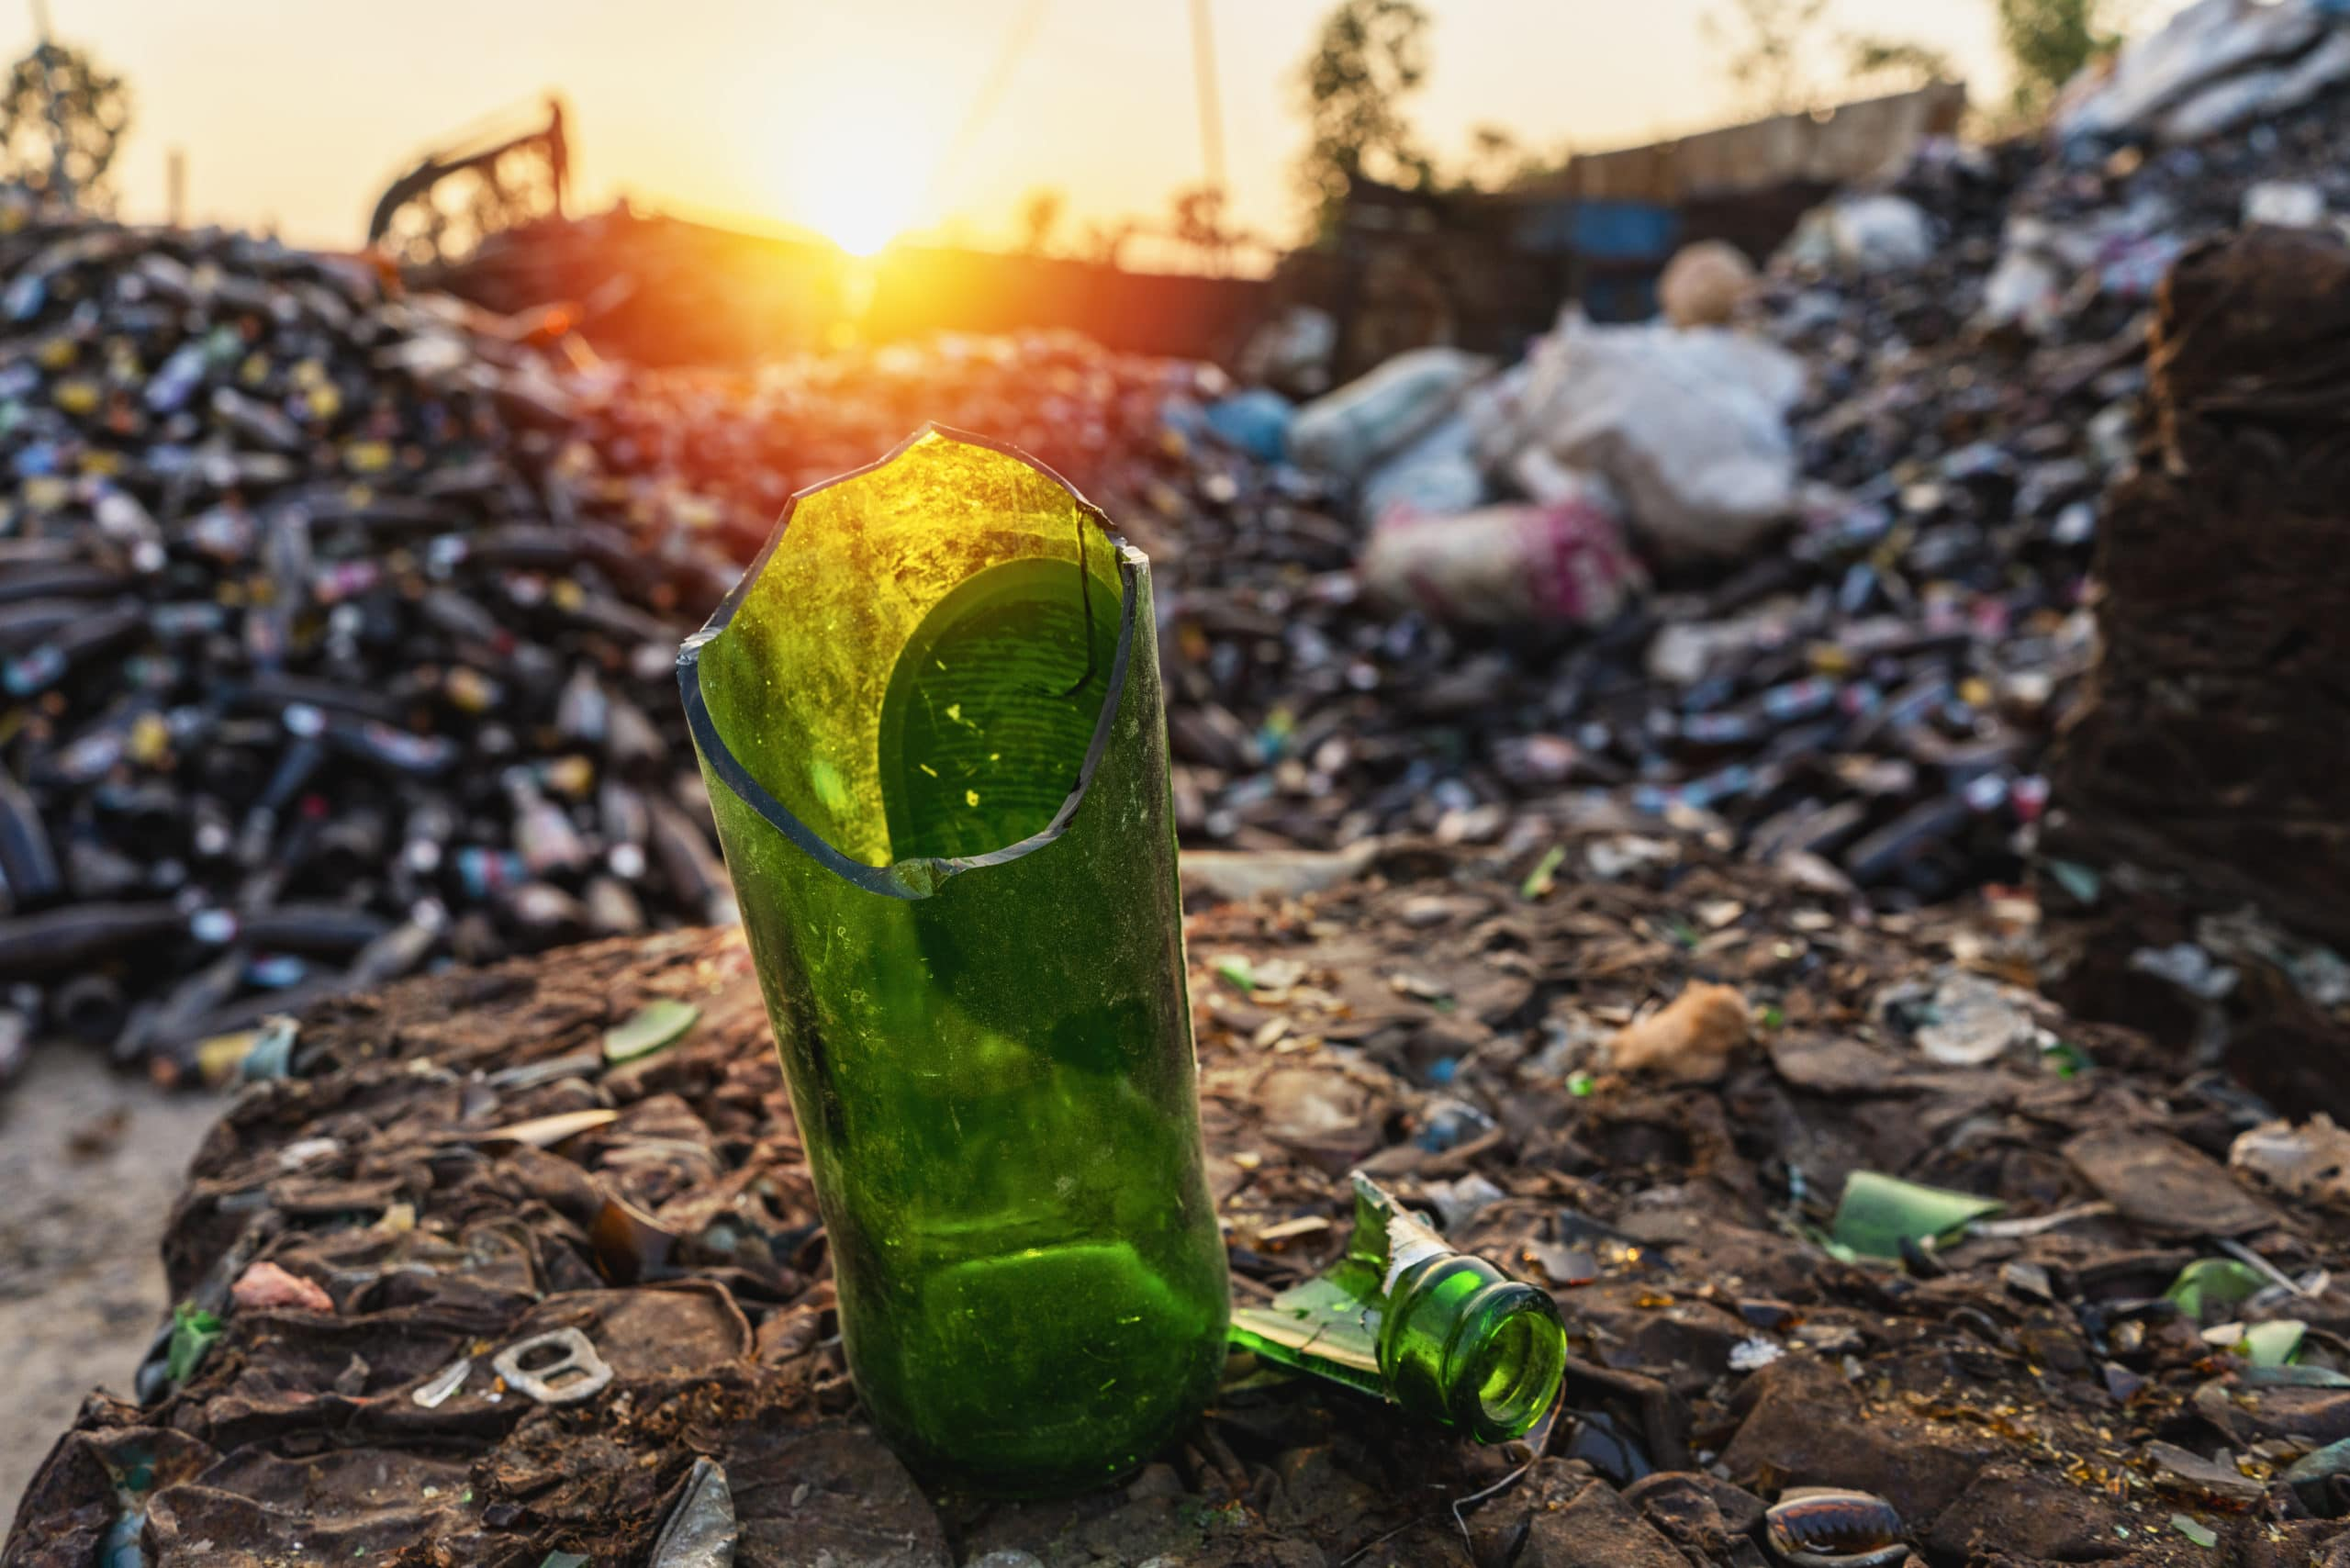 recyclable waste,broken bottles, many broken glass bottles from waste separation factories for recycling.